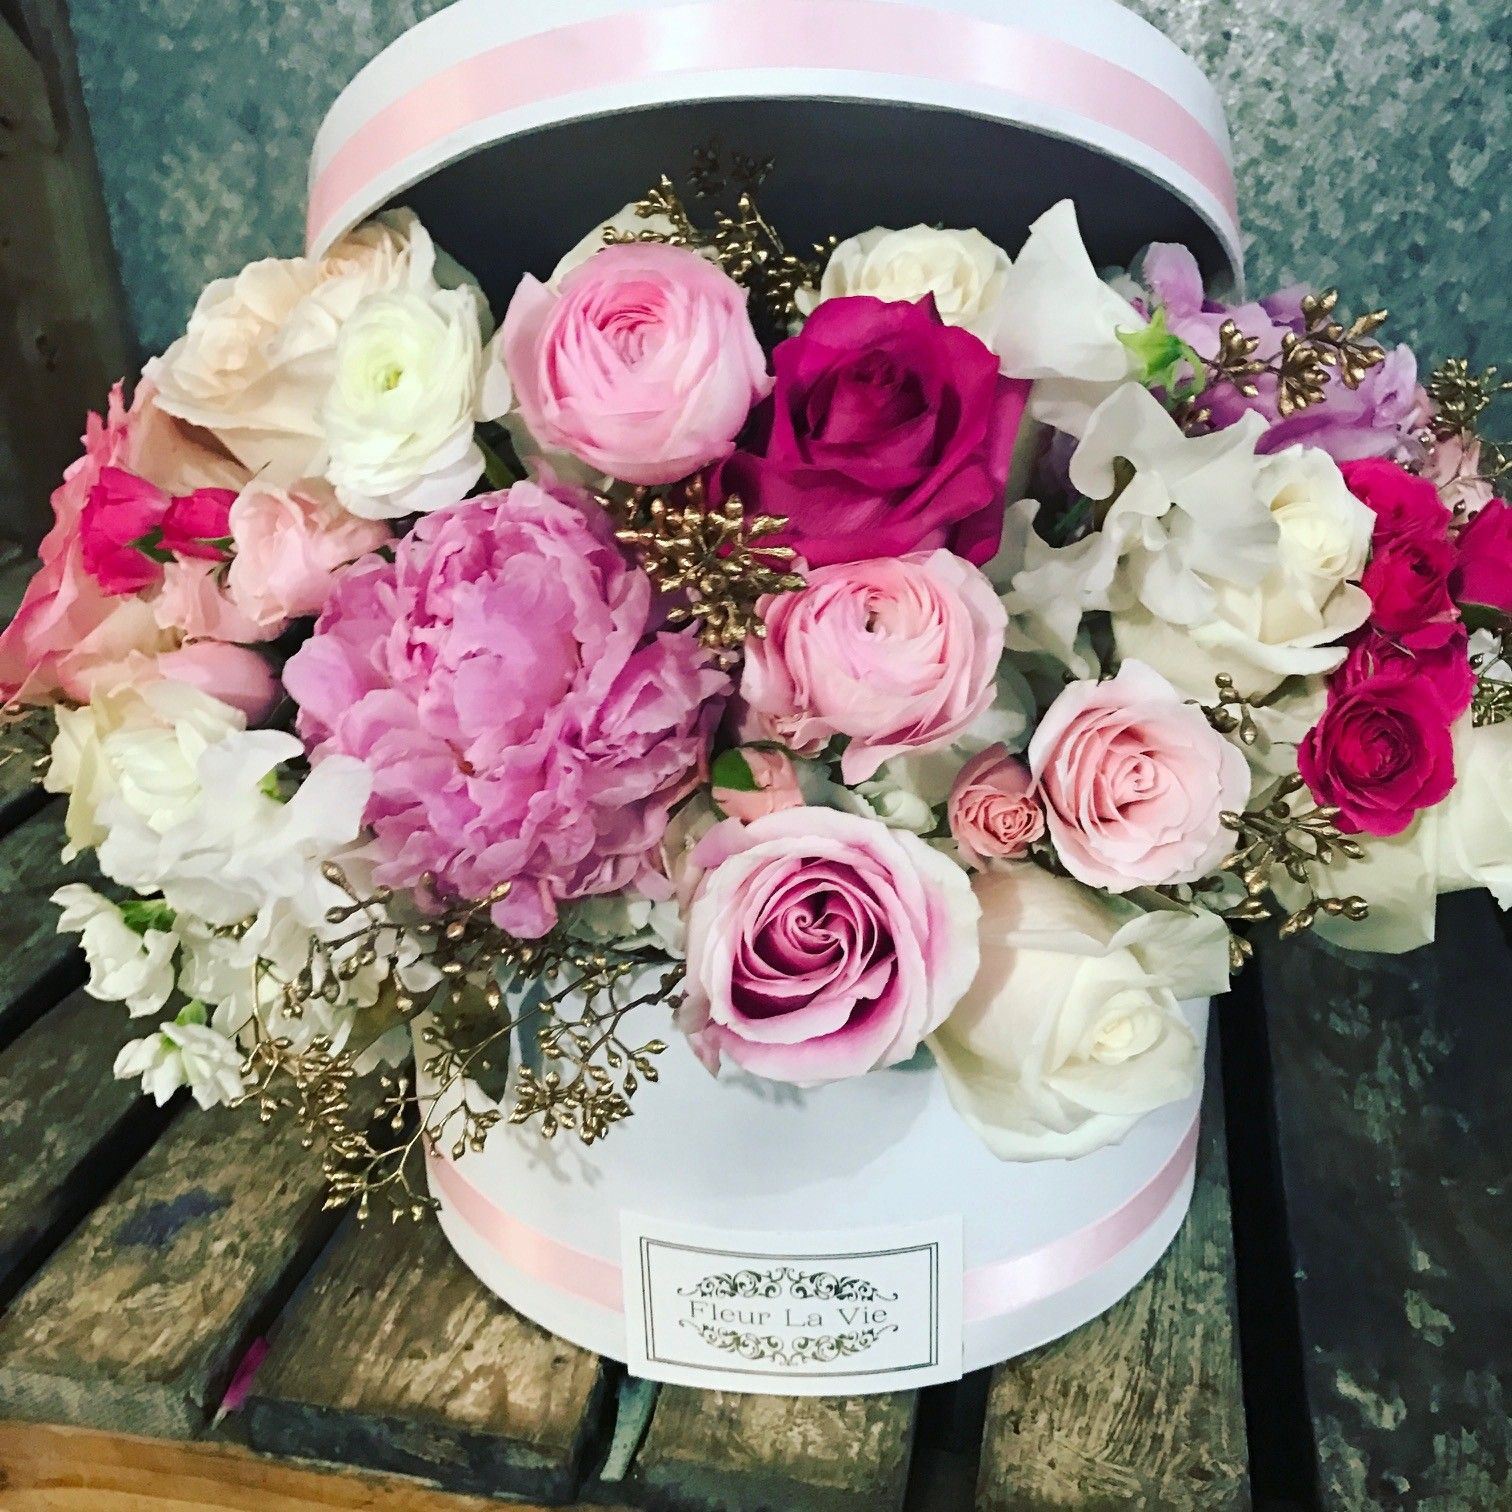 Send Pink The hat box version by Flower Allie and Fleur La Vie in Fullerton CA from Flower Allie the best florist in Fullerton